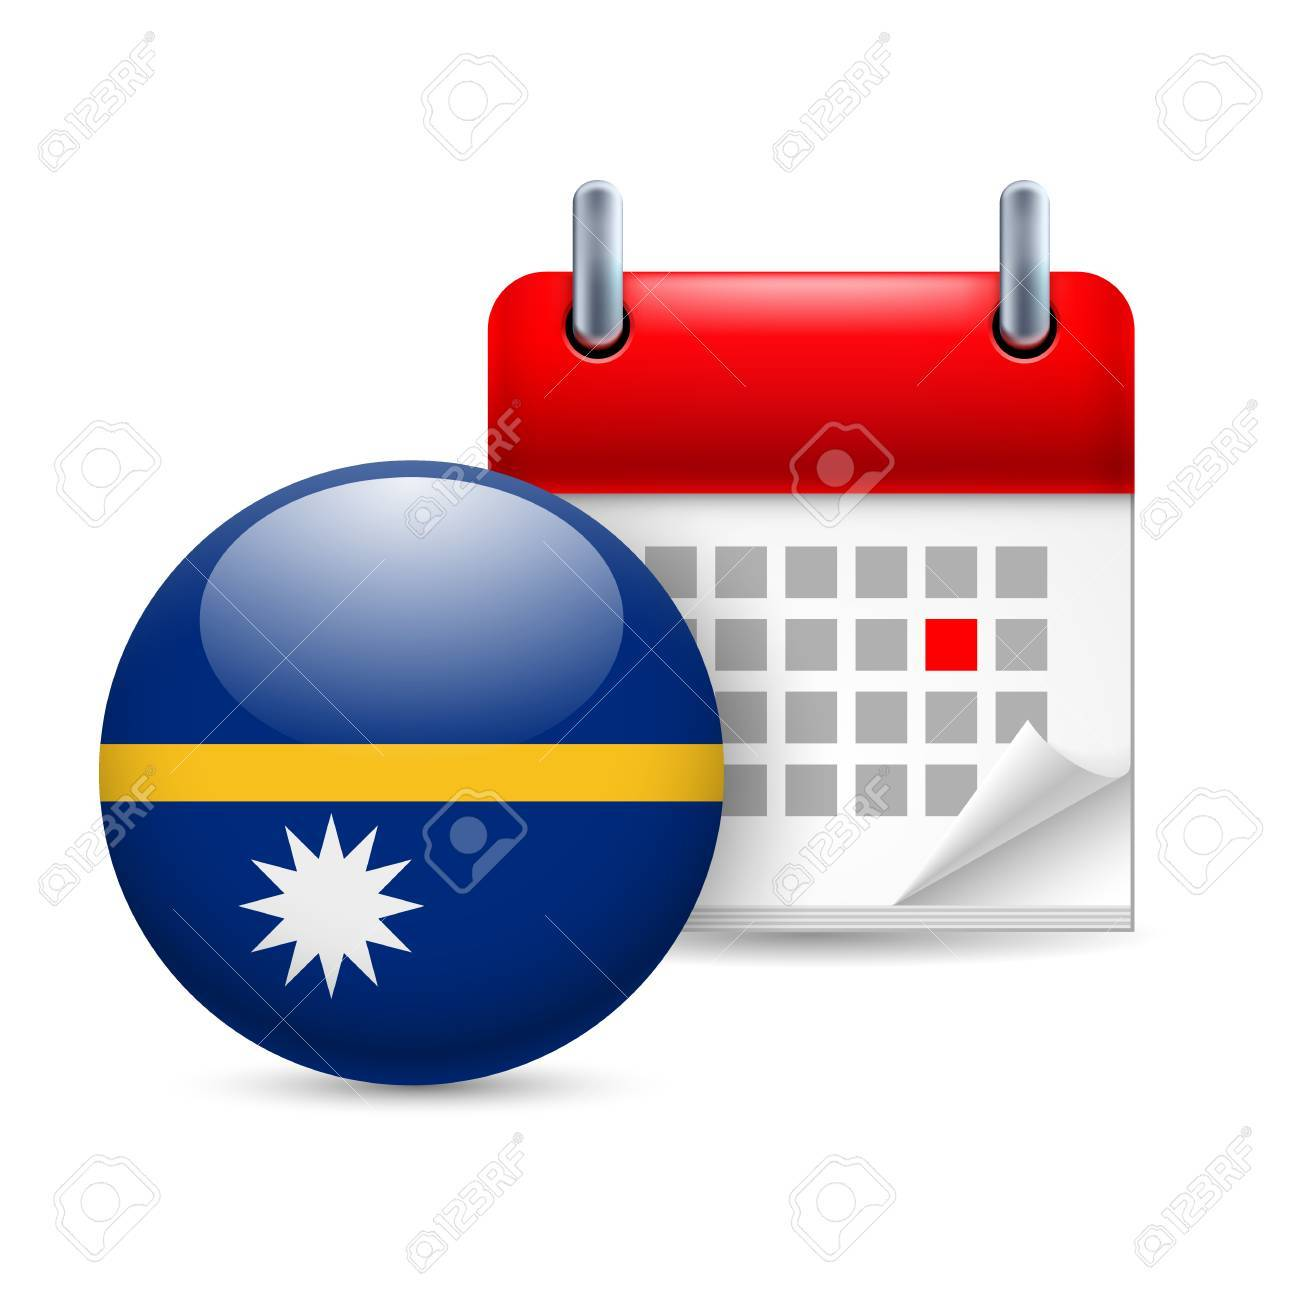 Calendar and round flag icon. National holiday in Nauru Stock Vector - 30078079